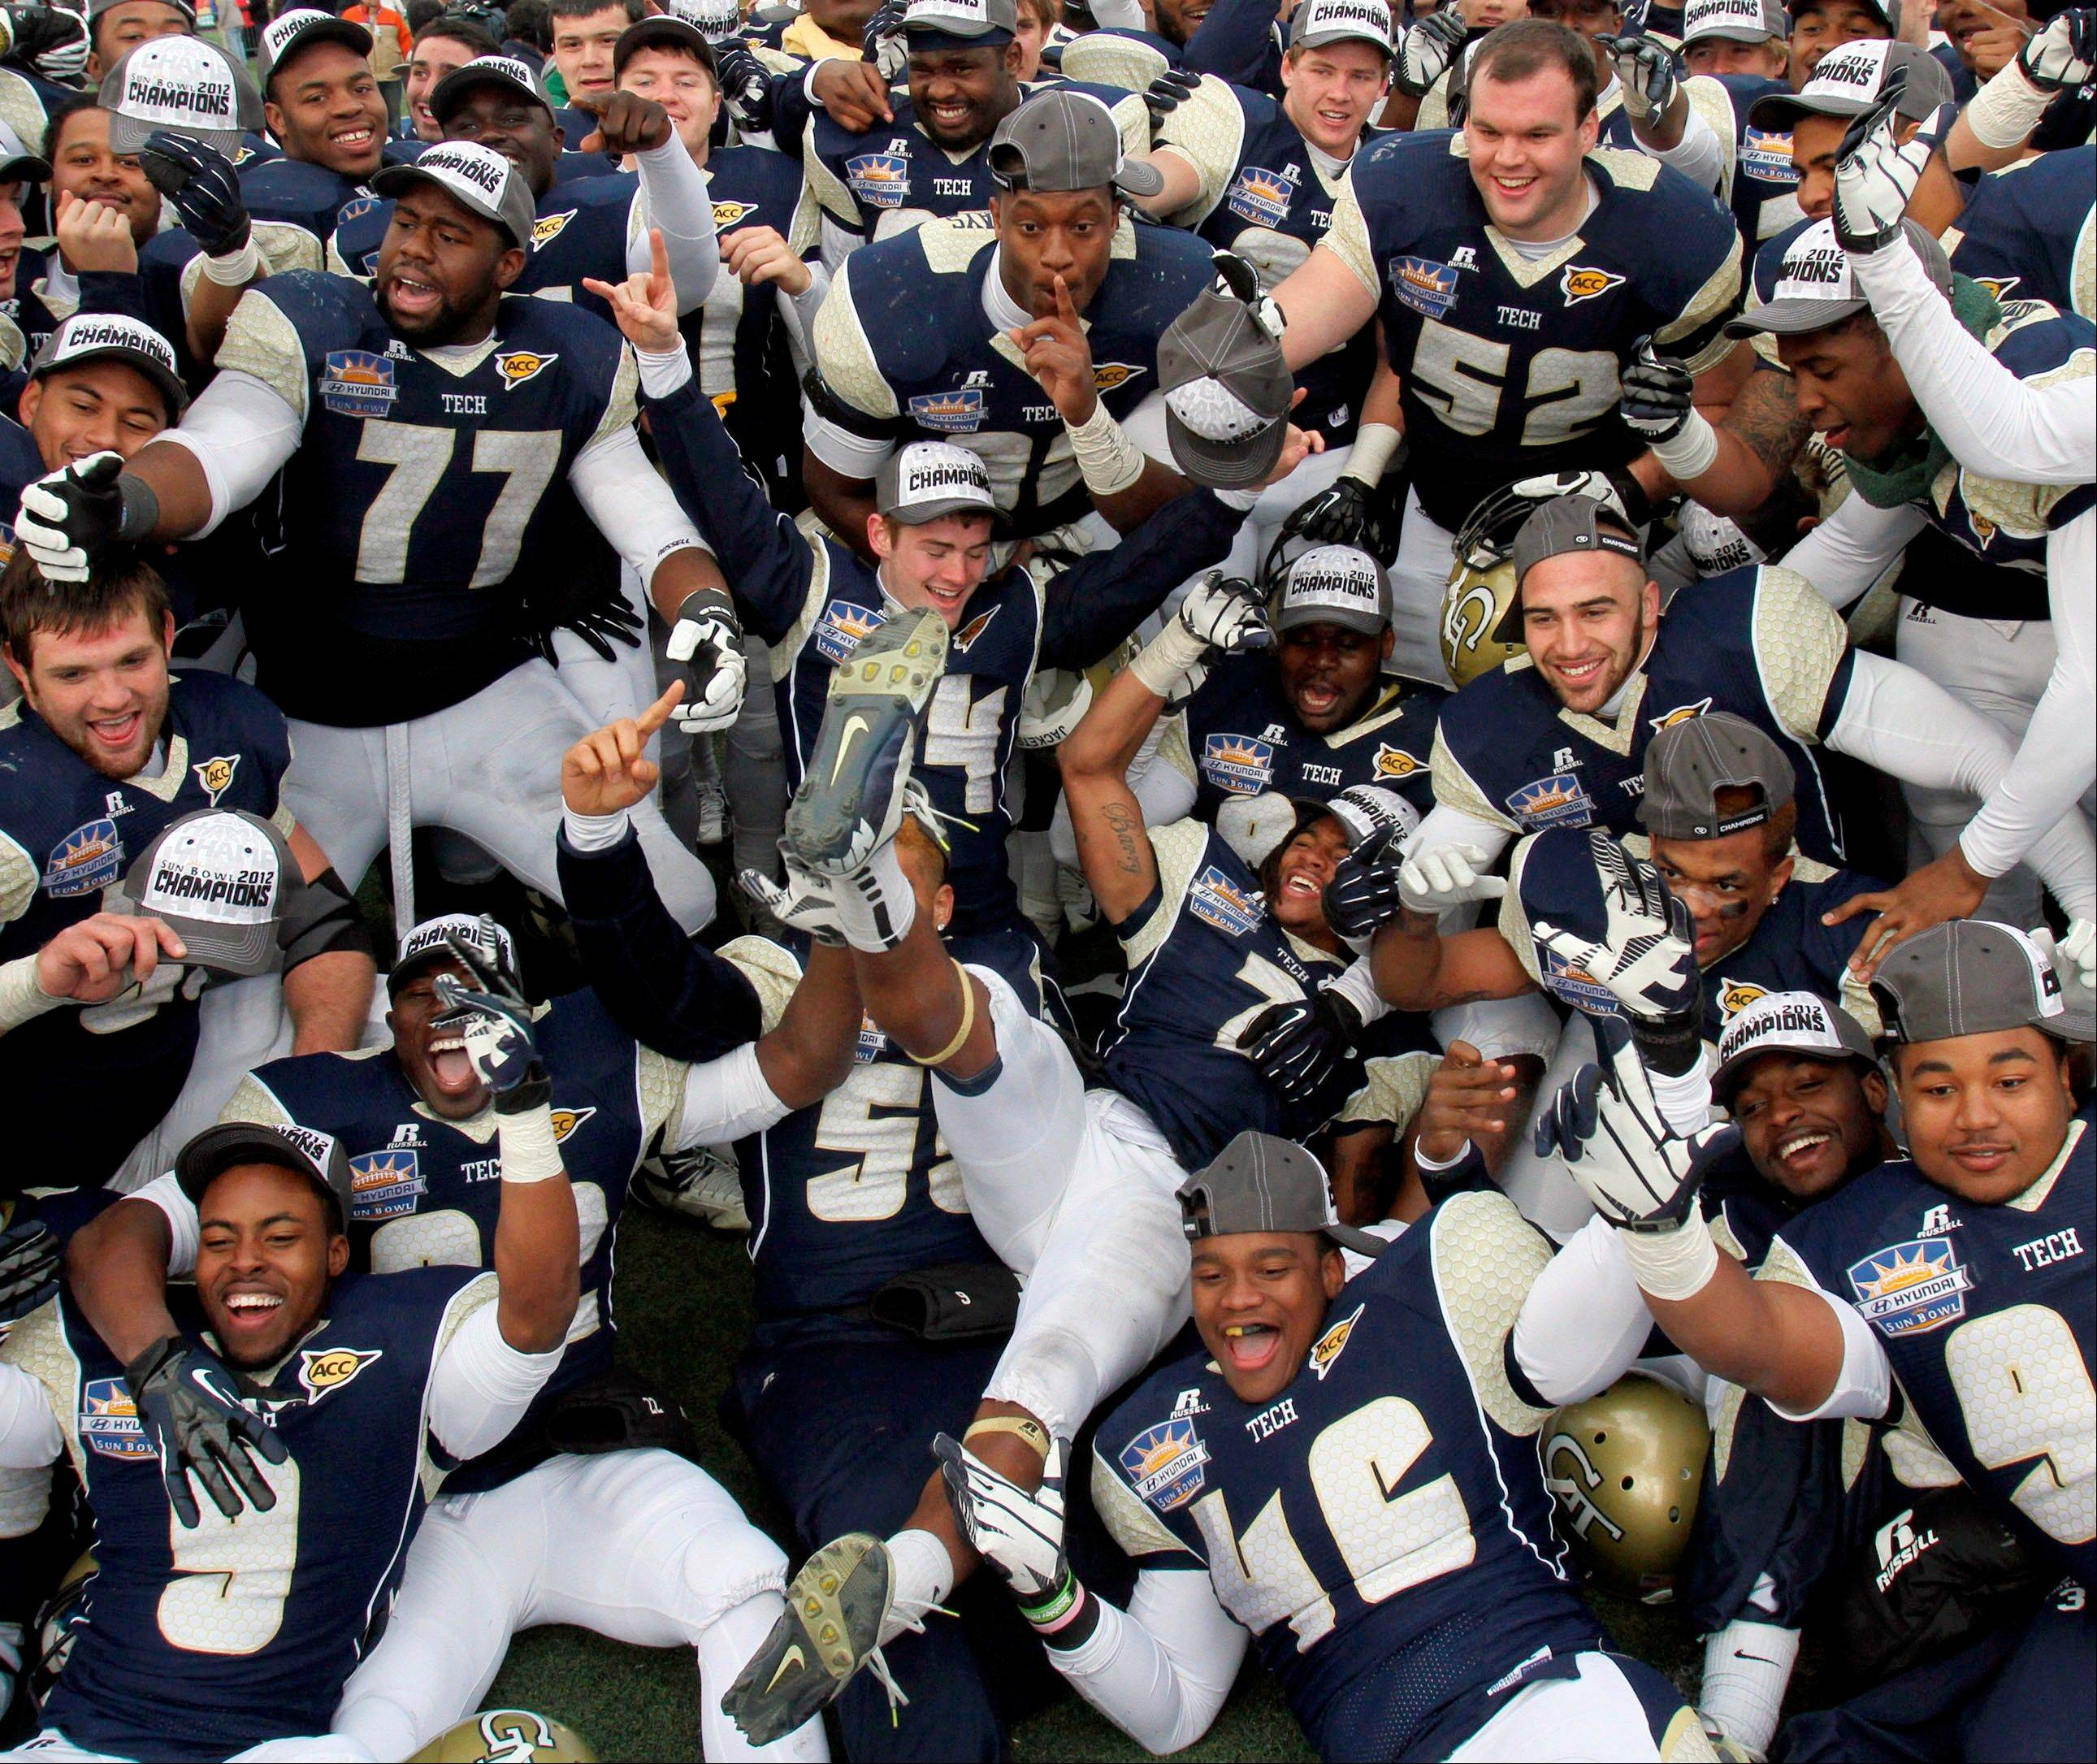 Georgia Tech players celebrate their 21-7 win over Southern California in the Sun Bowl on Monday in El Paso, Texas.